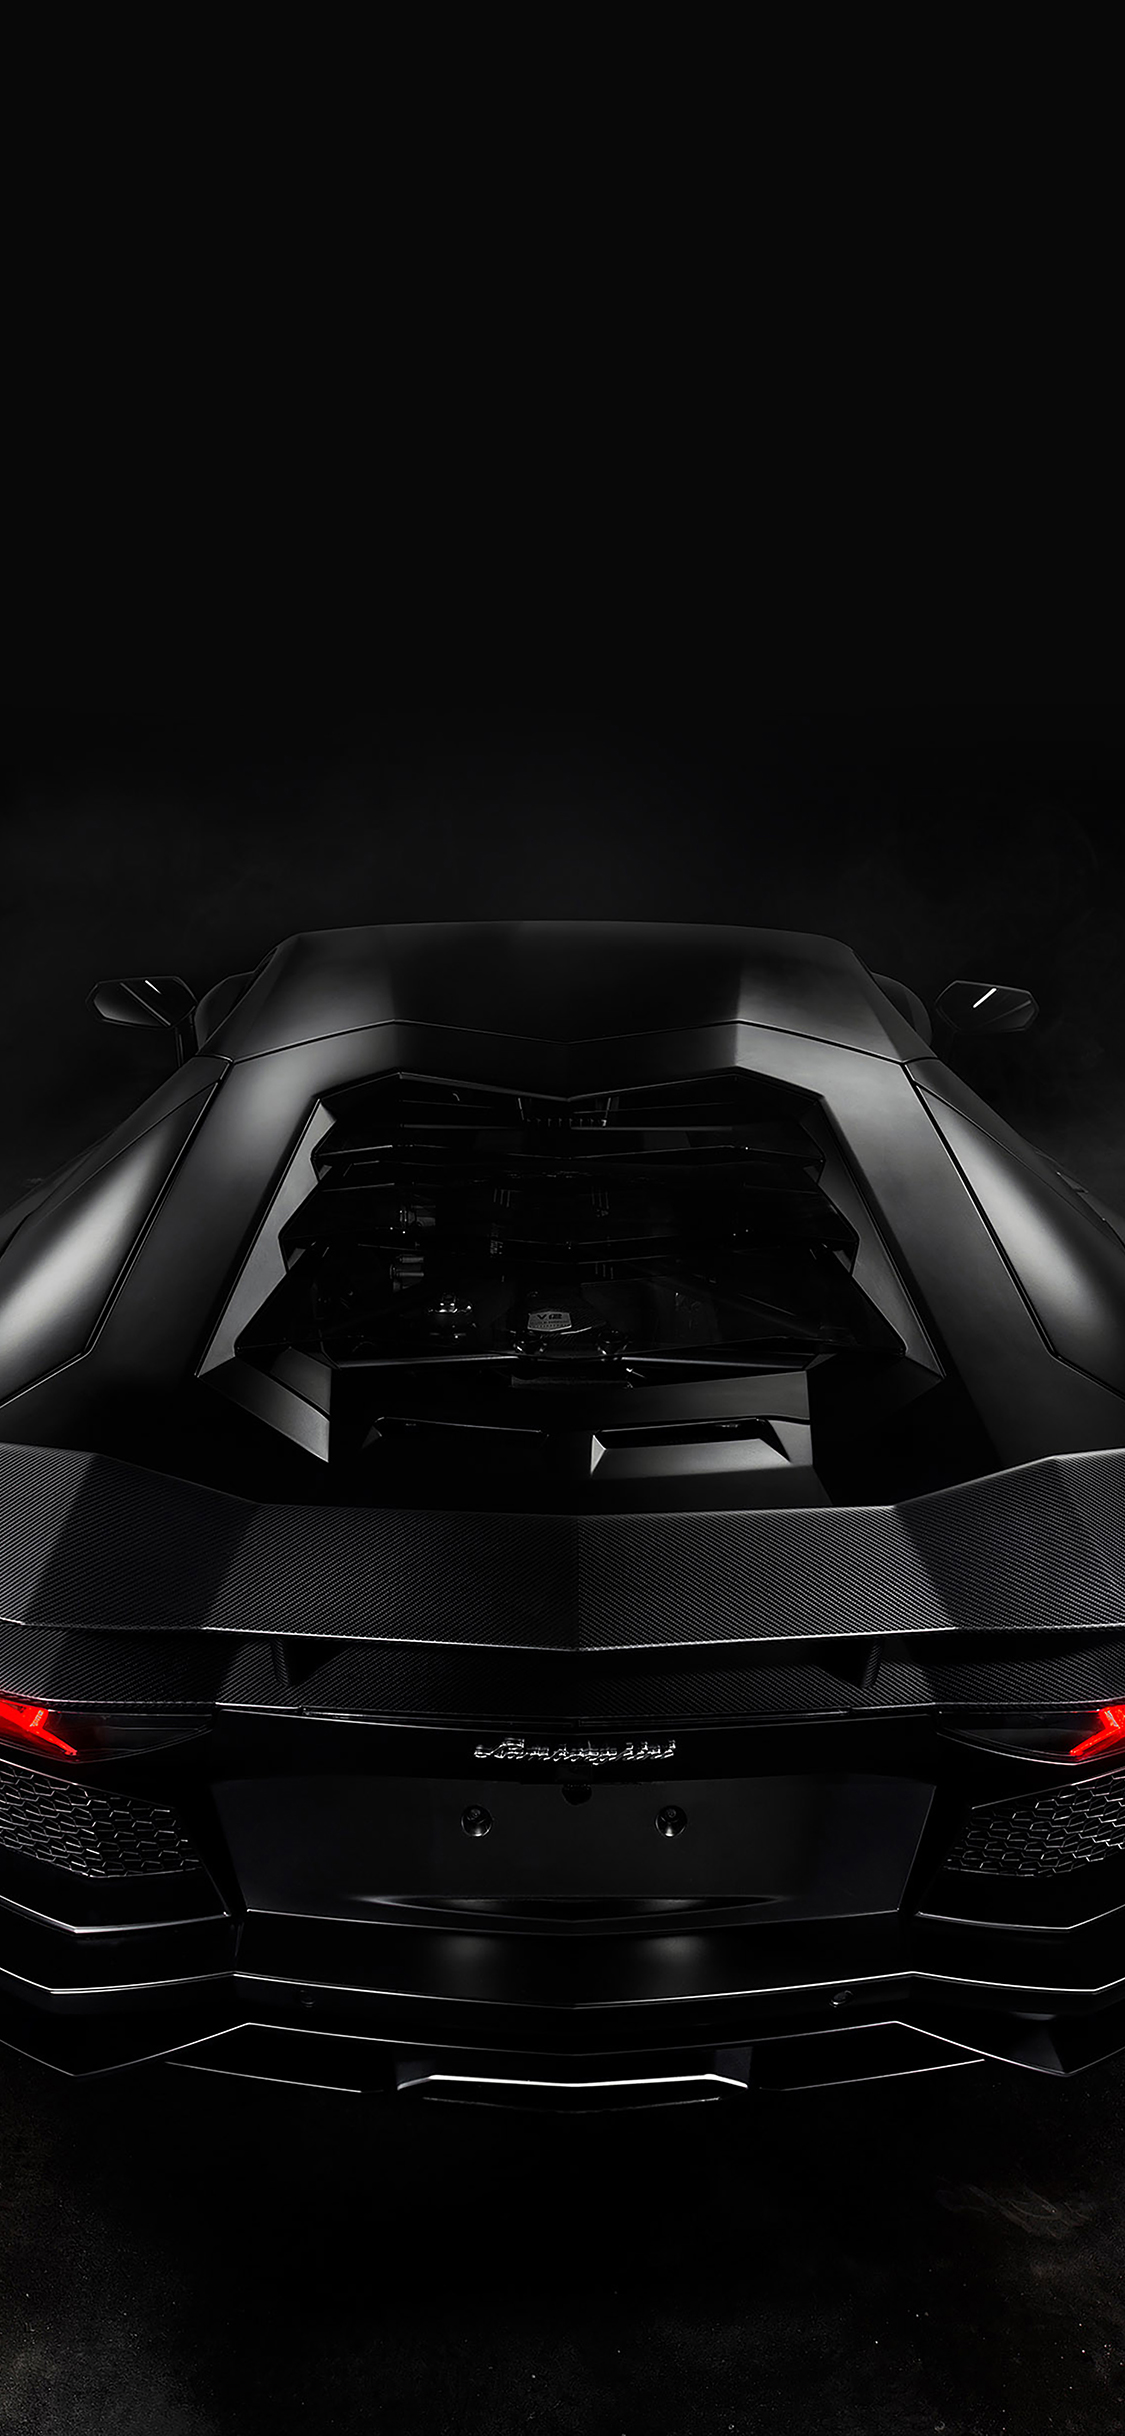 iPhoneXpapers.com-Apple-iPhone-wallpaper-aa14-back-of-lamorghini-aventador-car-dark-art